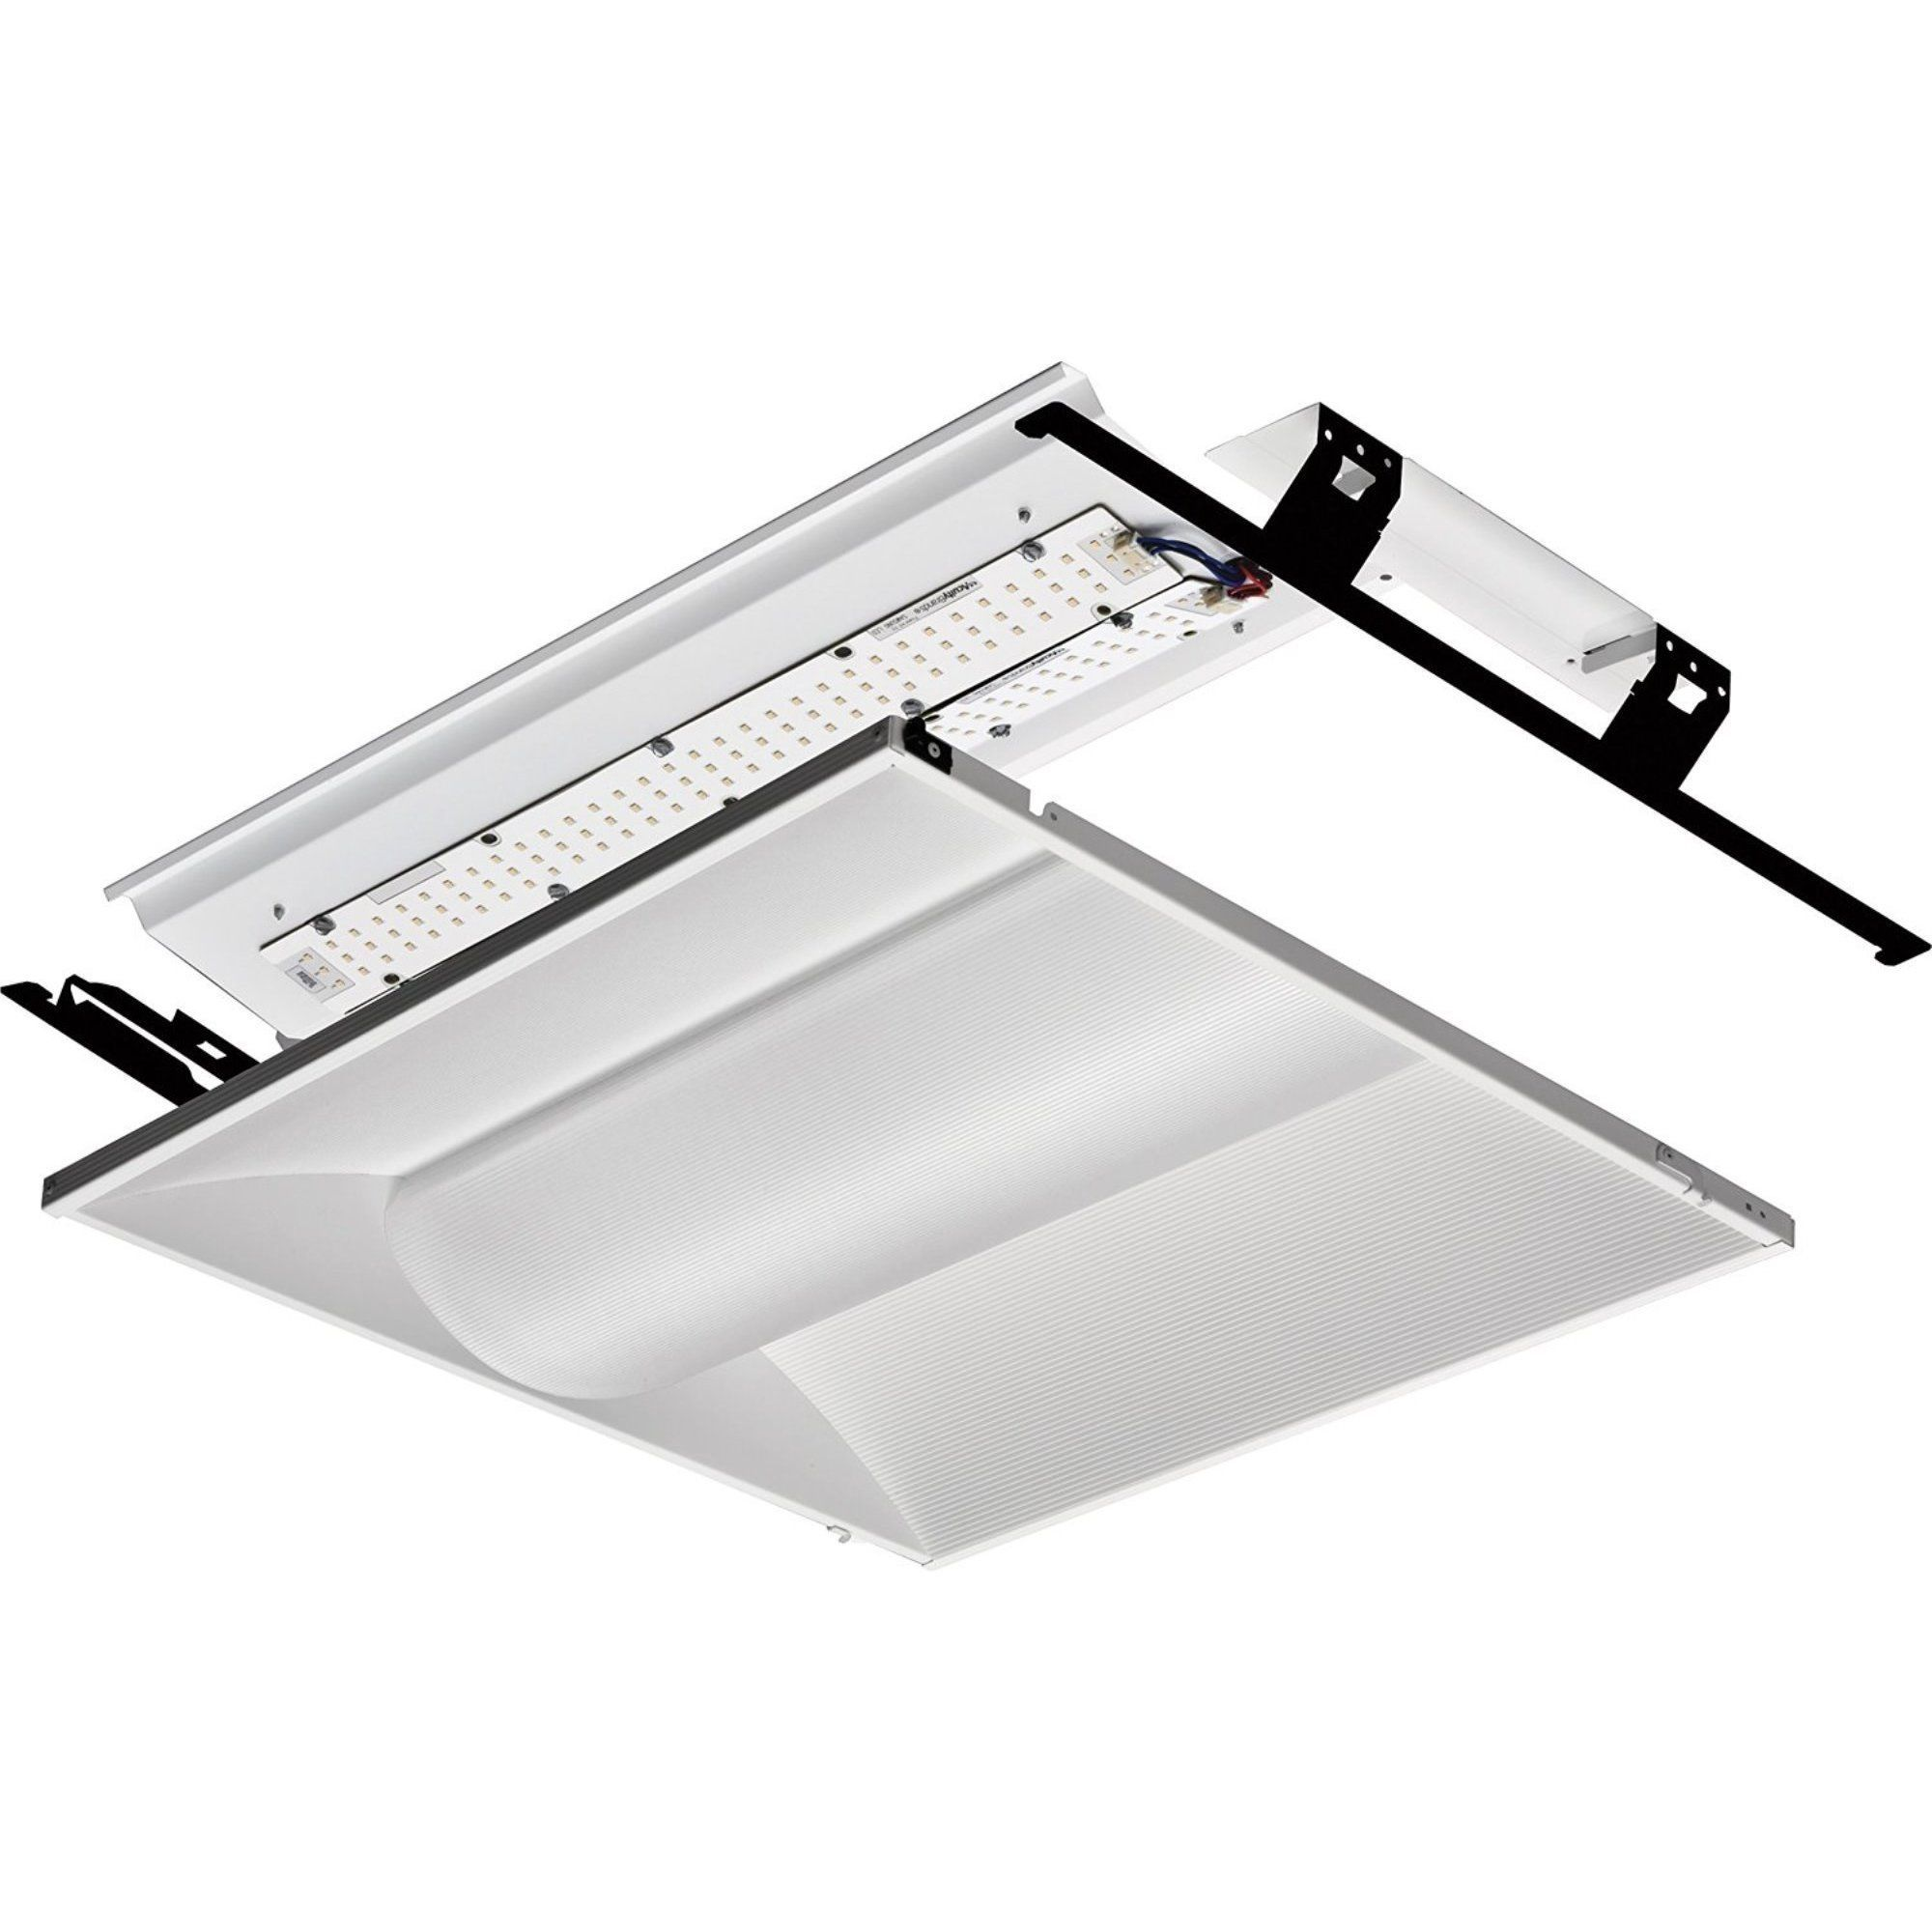 Lithonia Under Cabinet Lighting Lithonia Lighting Architectural Troffer Light Kit Products